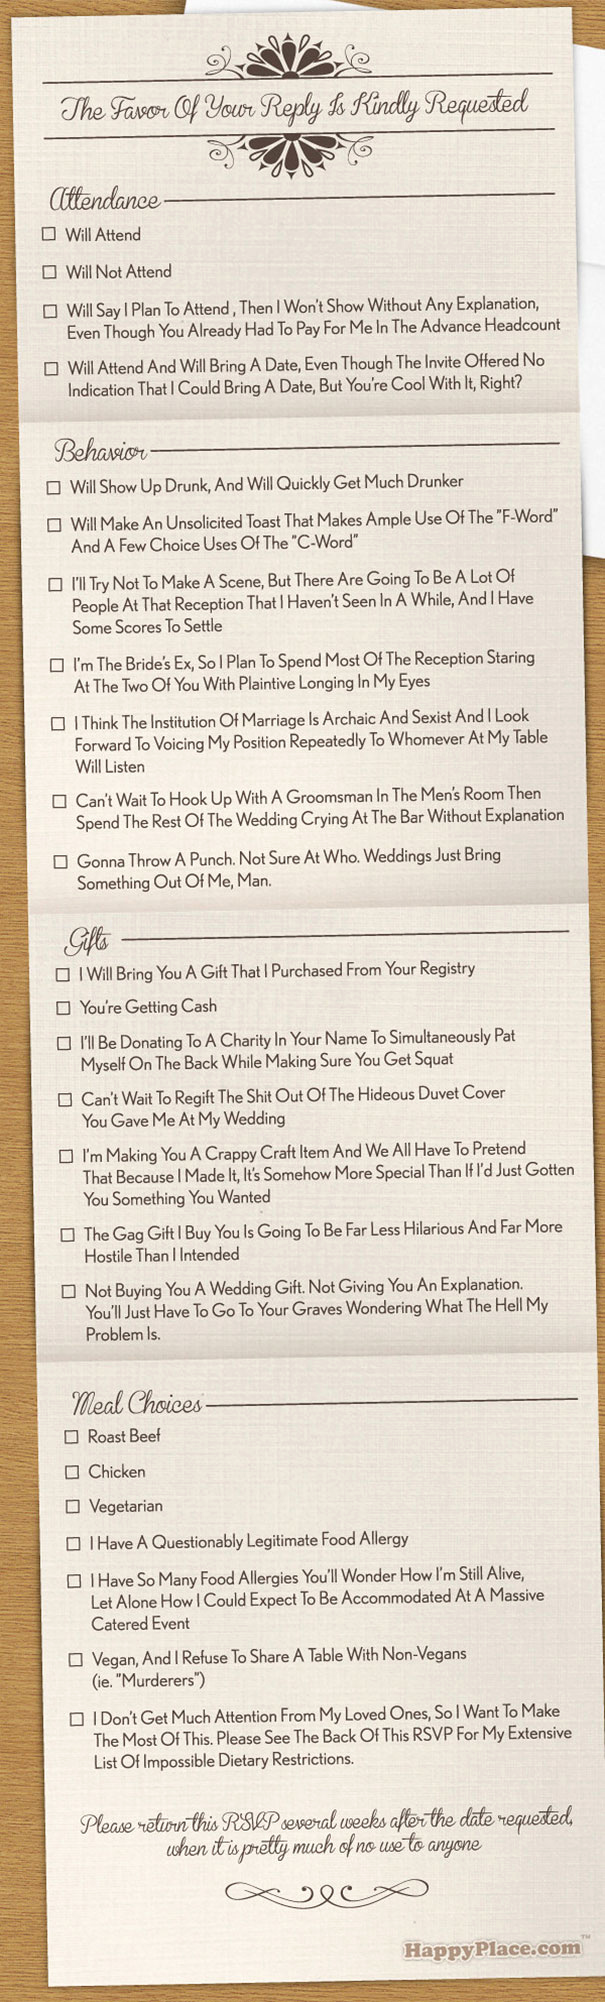 Wedding Invitation Wording Funny Elegant 9 Hilarious Wedding Invitations that Simply Can't Be